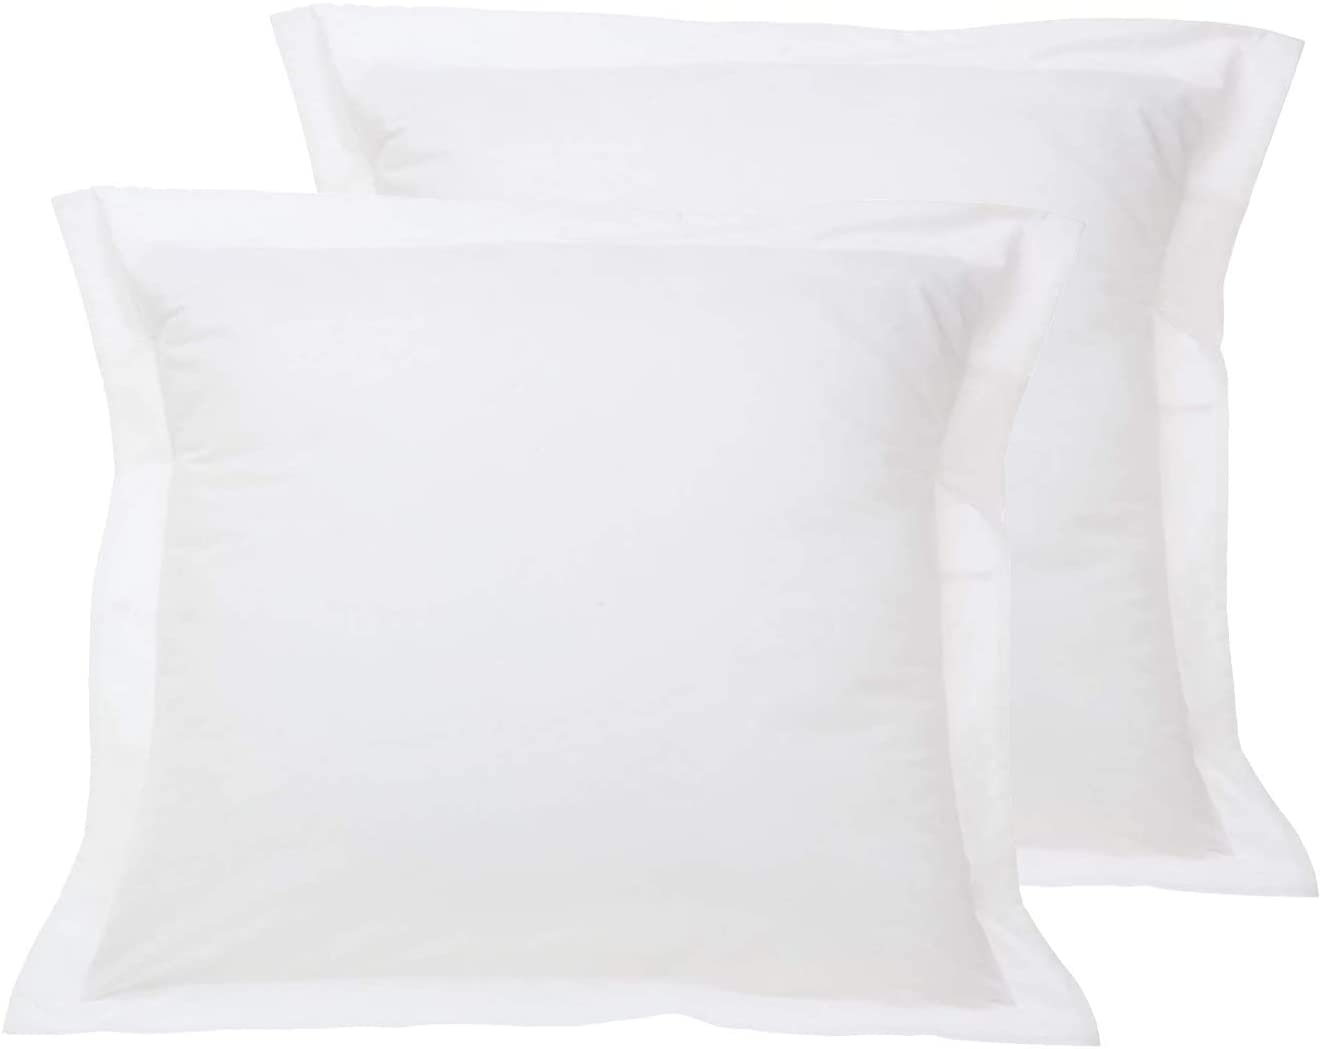 JBD LINEN Small Euro Sized 24 x 24 inch Pillow Shams Set of 2 Piece with Zipper Clouser, 800 Thread Count 100% Egyptian Cotton White Solid